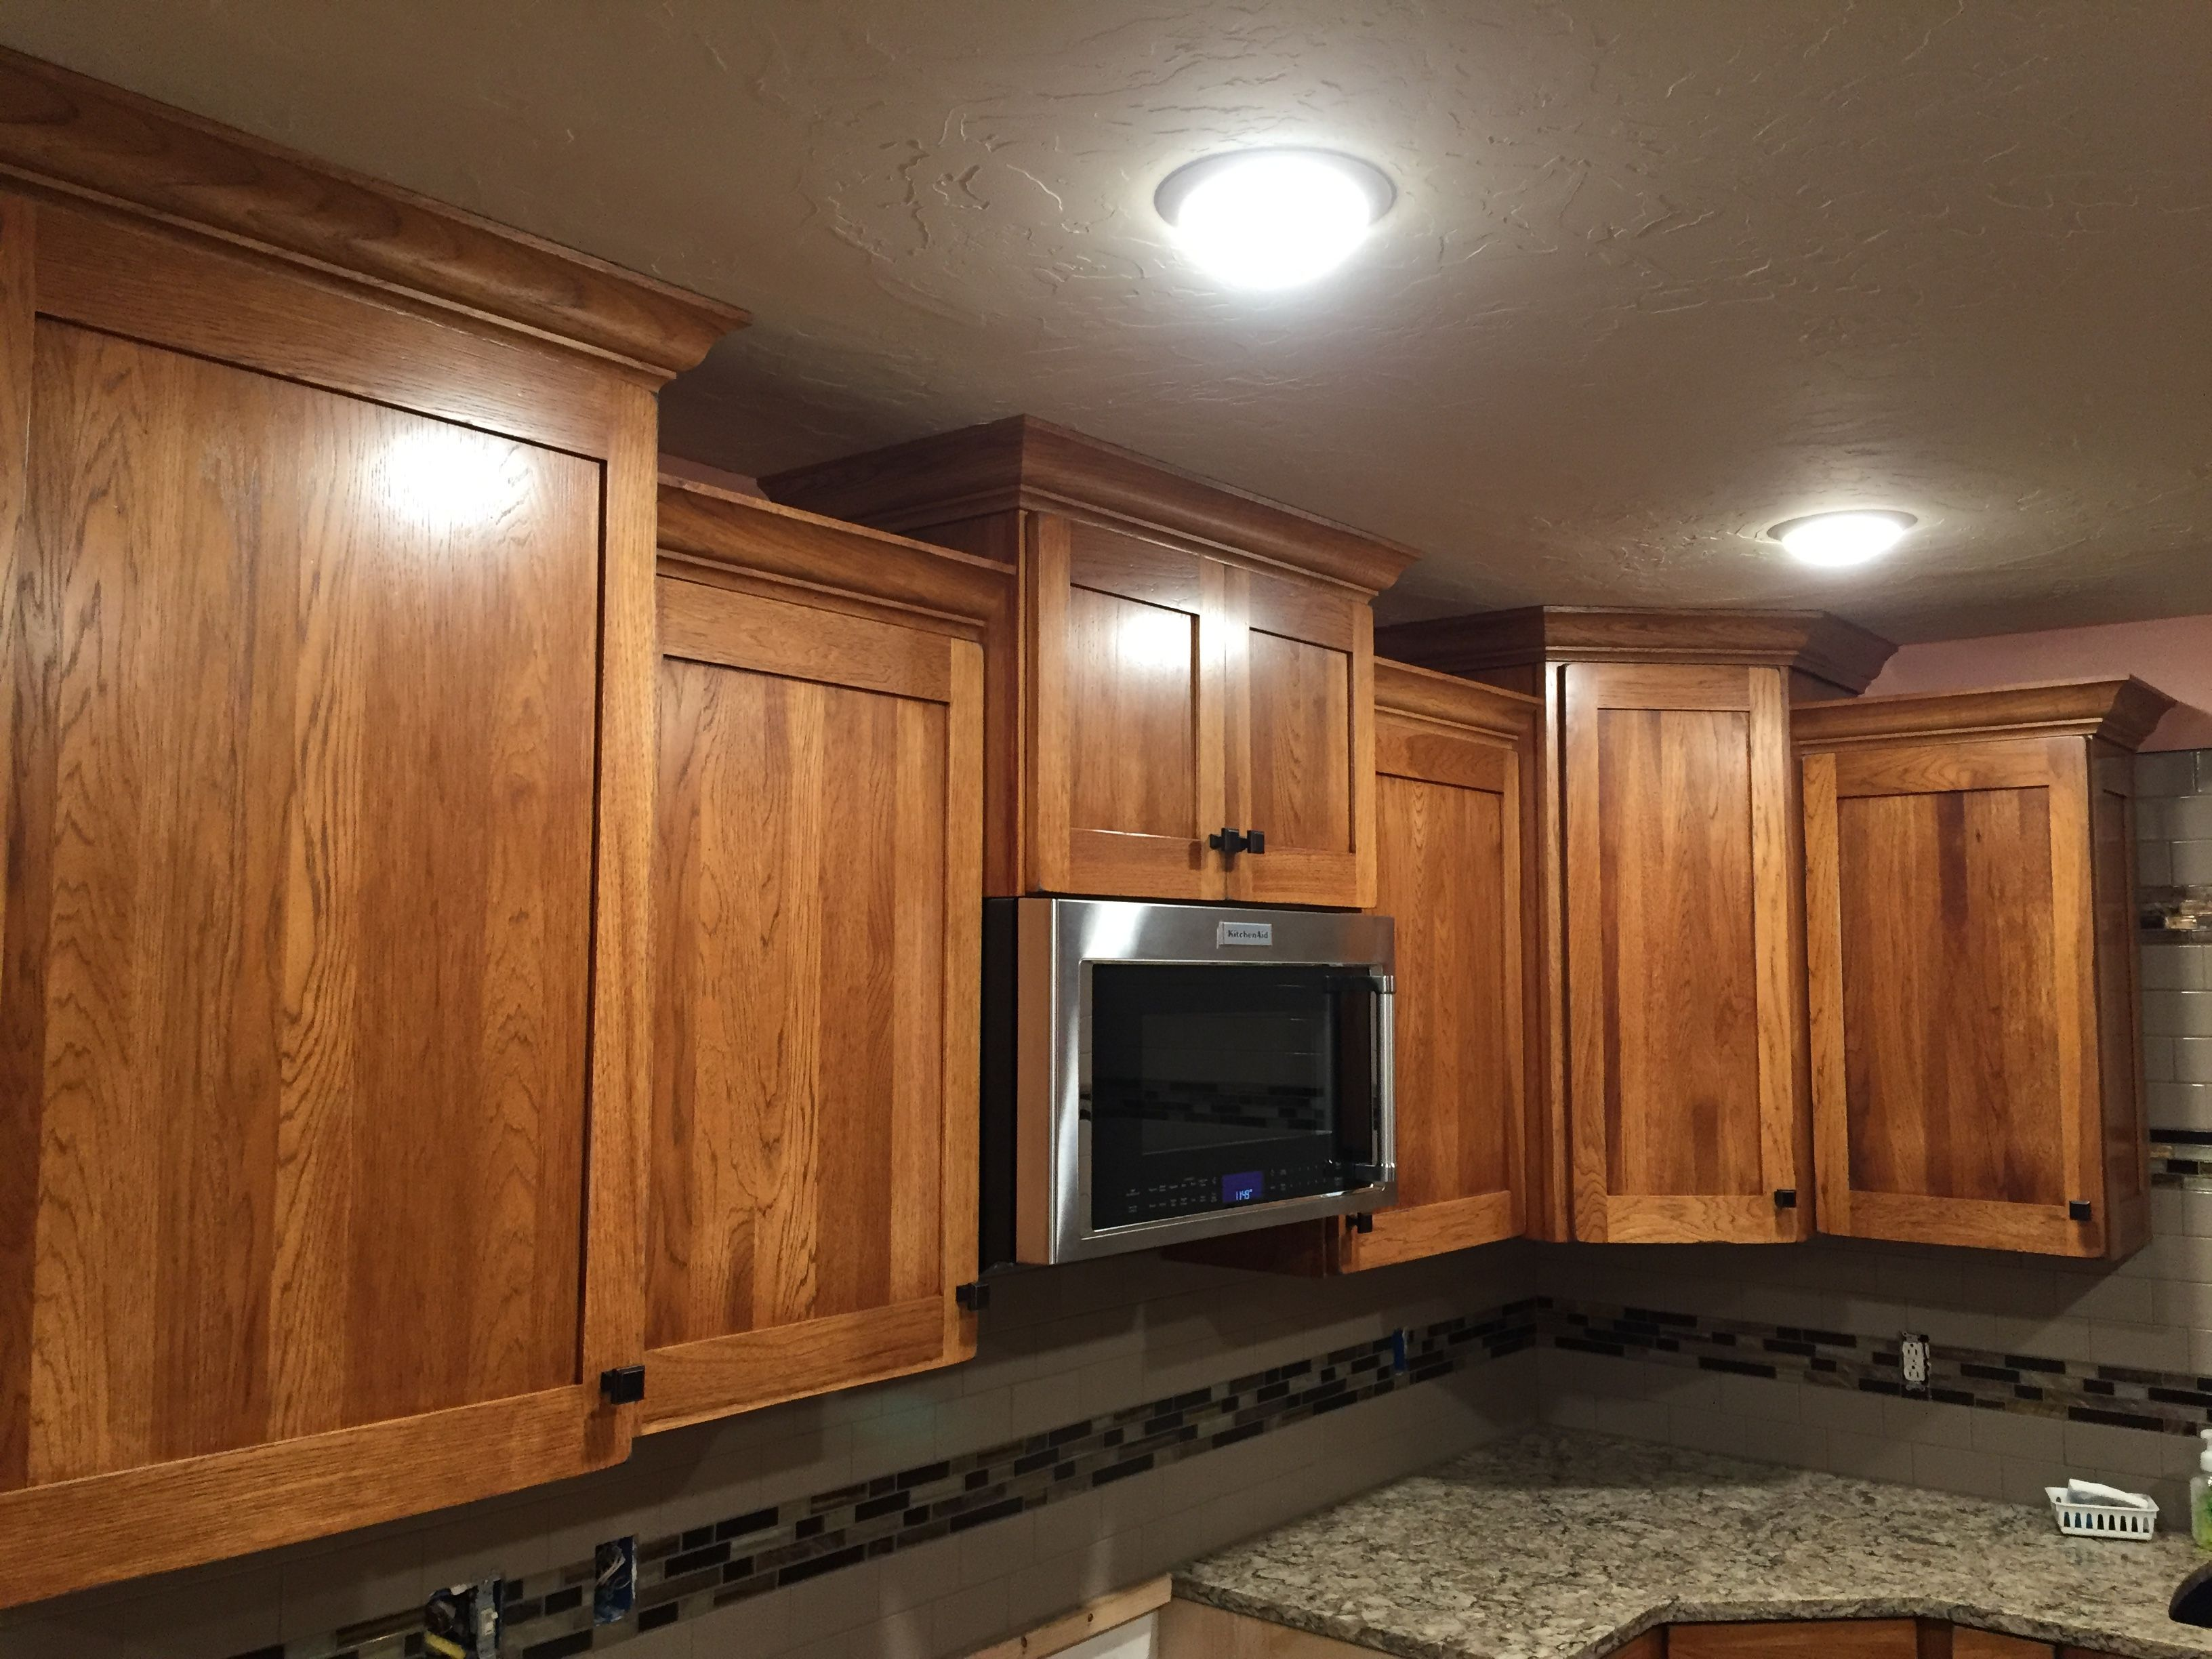 Pecan Cabinets With Crown Molding And Quartz Countertops Kitchen Remodel Kitchen Design Kitchen